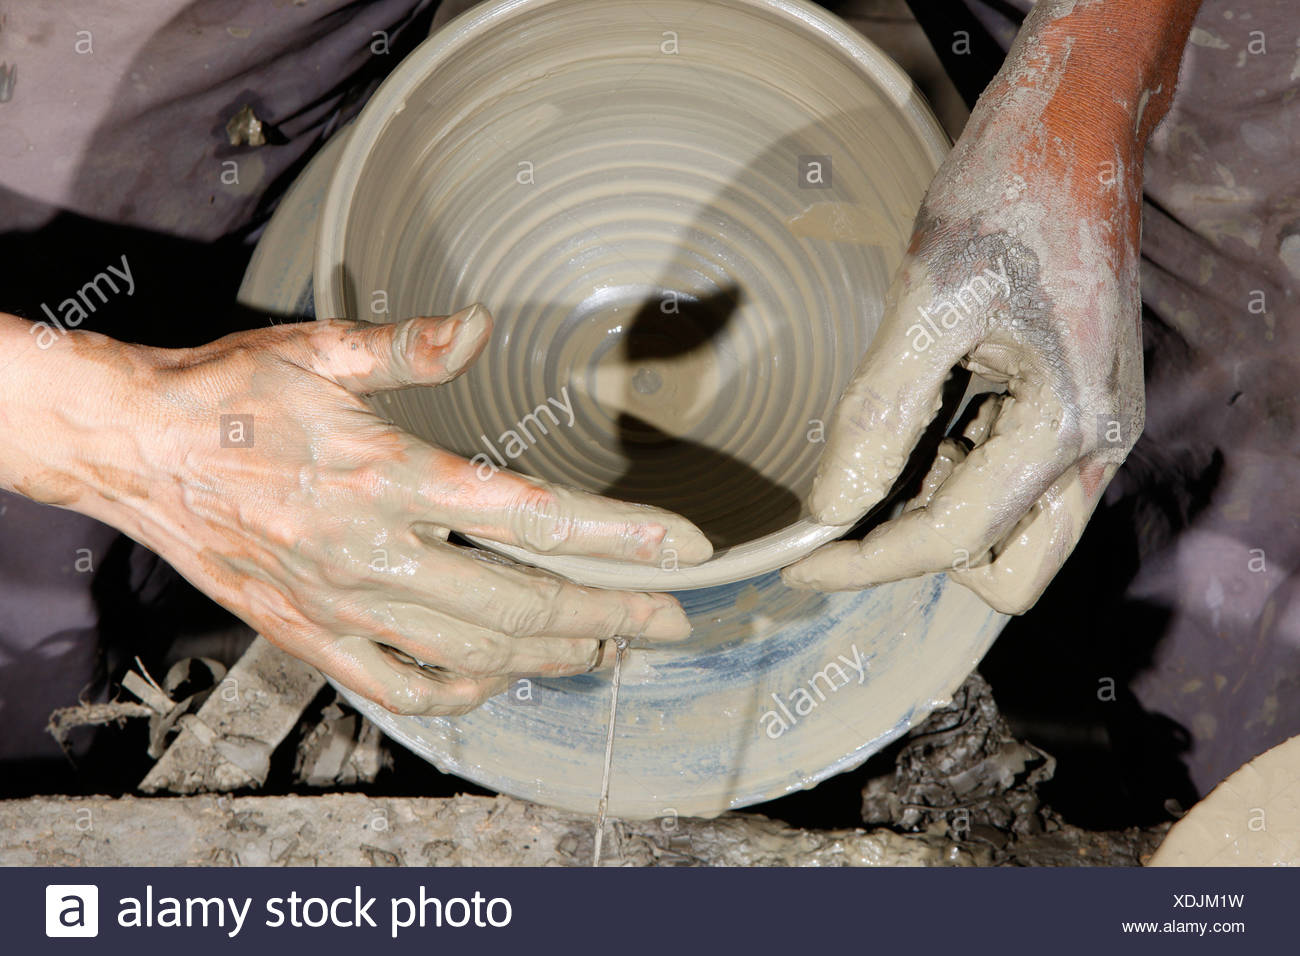 Production of pottery at a potter's wheel, Bamessing, Cameroon, Africa - Stock Image